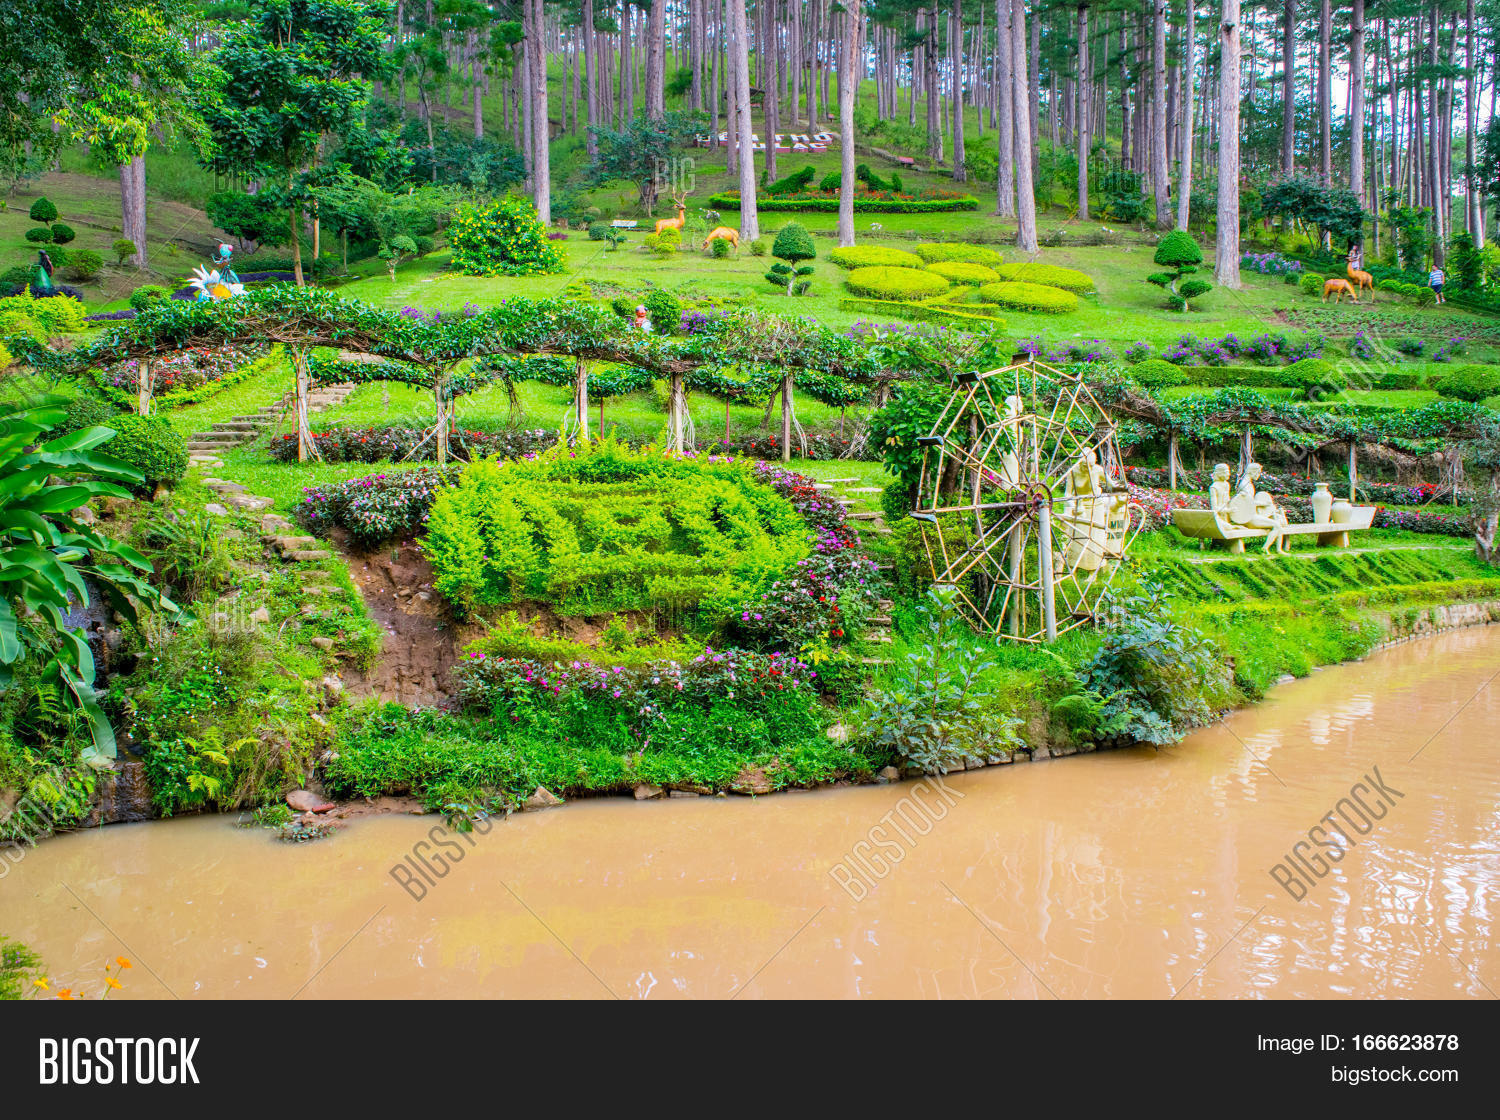 Landscape Design Of Relax Tropical Garden With Statues On A River Side,  Dalat City,